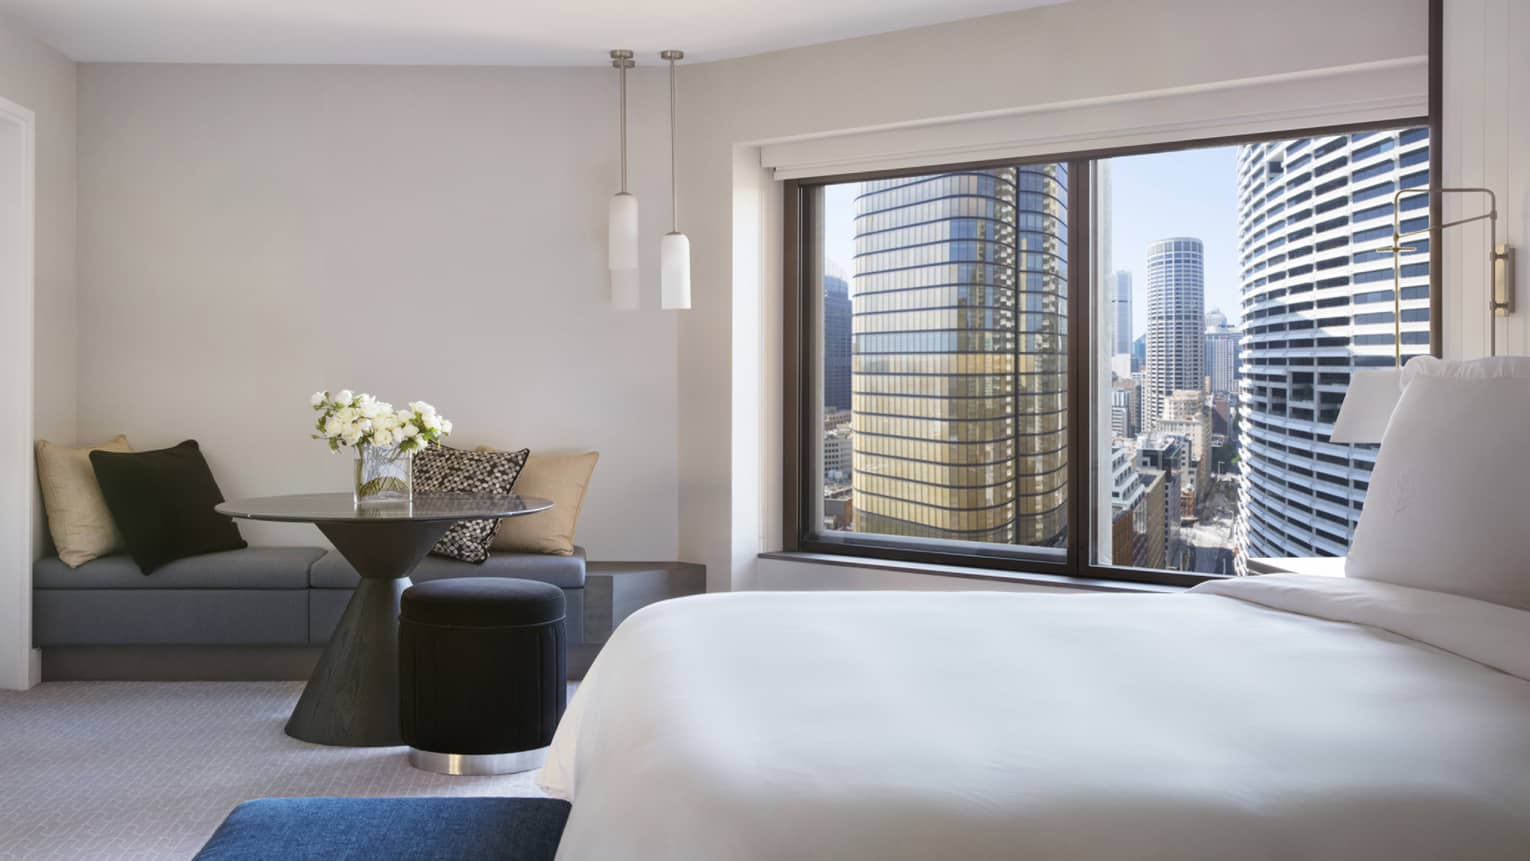 Premier City Rooms at Four Seasons Hotel Sydney feature sleek interiors and city views